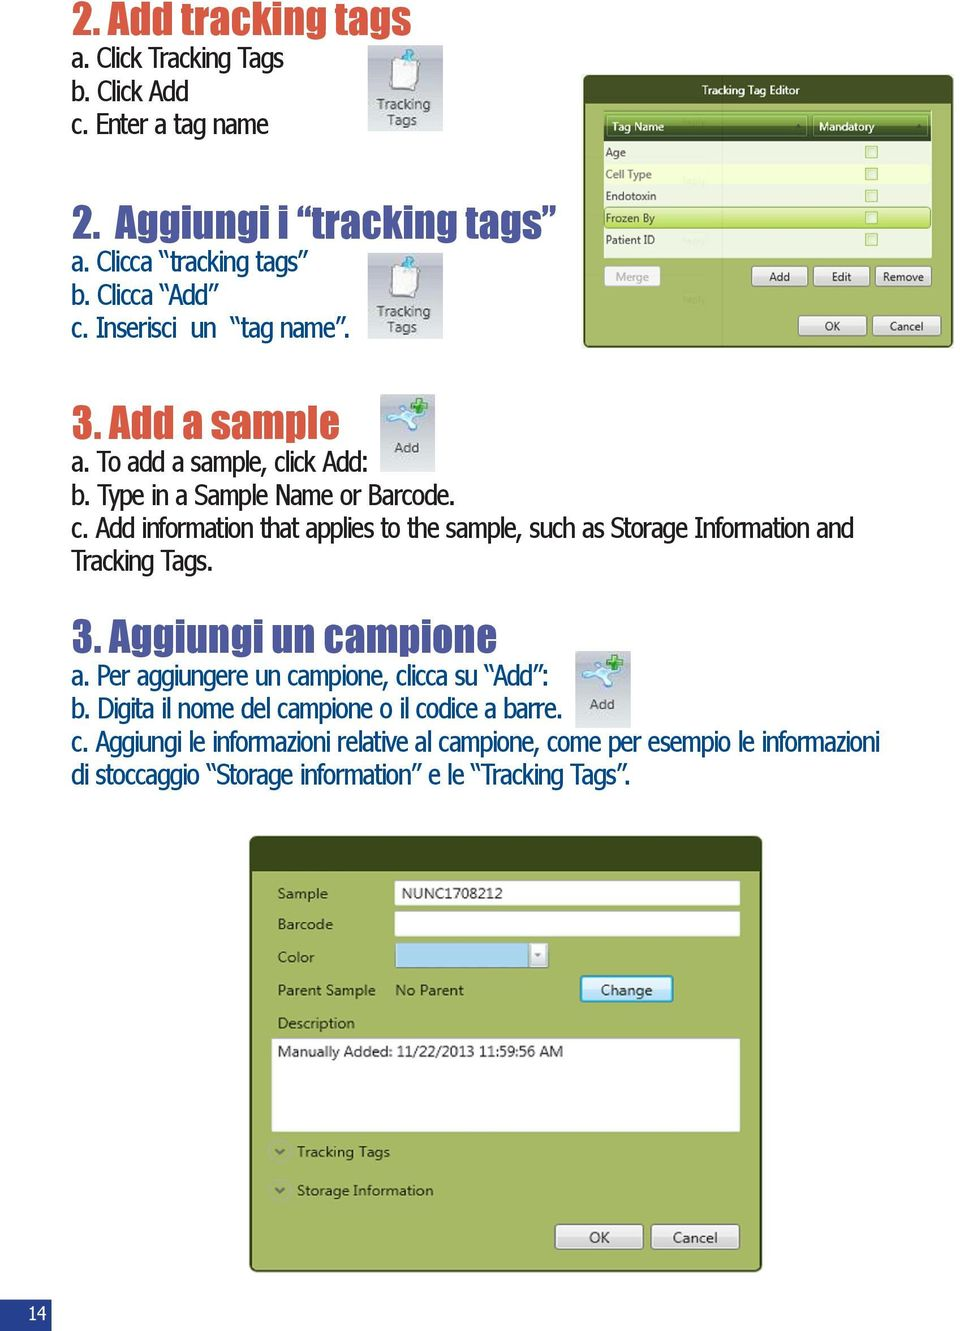 Aggiungi un campione a. Click Tracking Tags b. Click Add c. Enter a tag name. a. To add a sample, click Add: b. Type in a Sample Name or Barcode. or Barcode. c. Add information that applies to the sample, such as Storage Information and c.